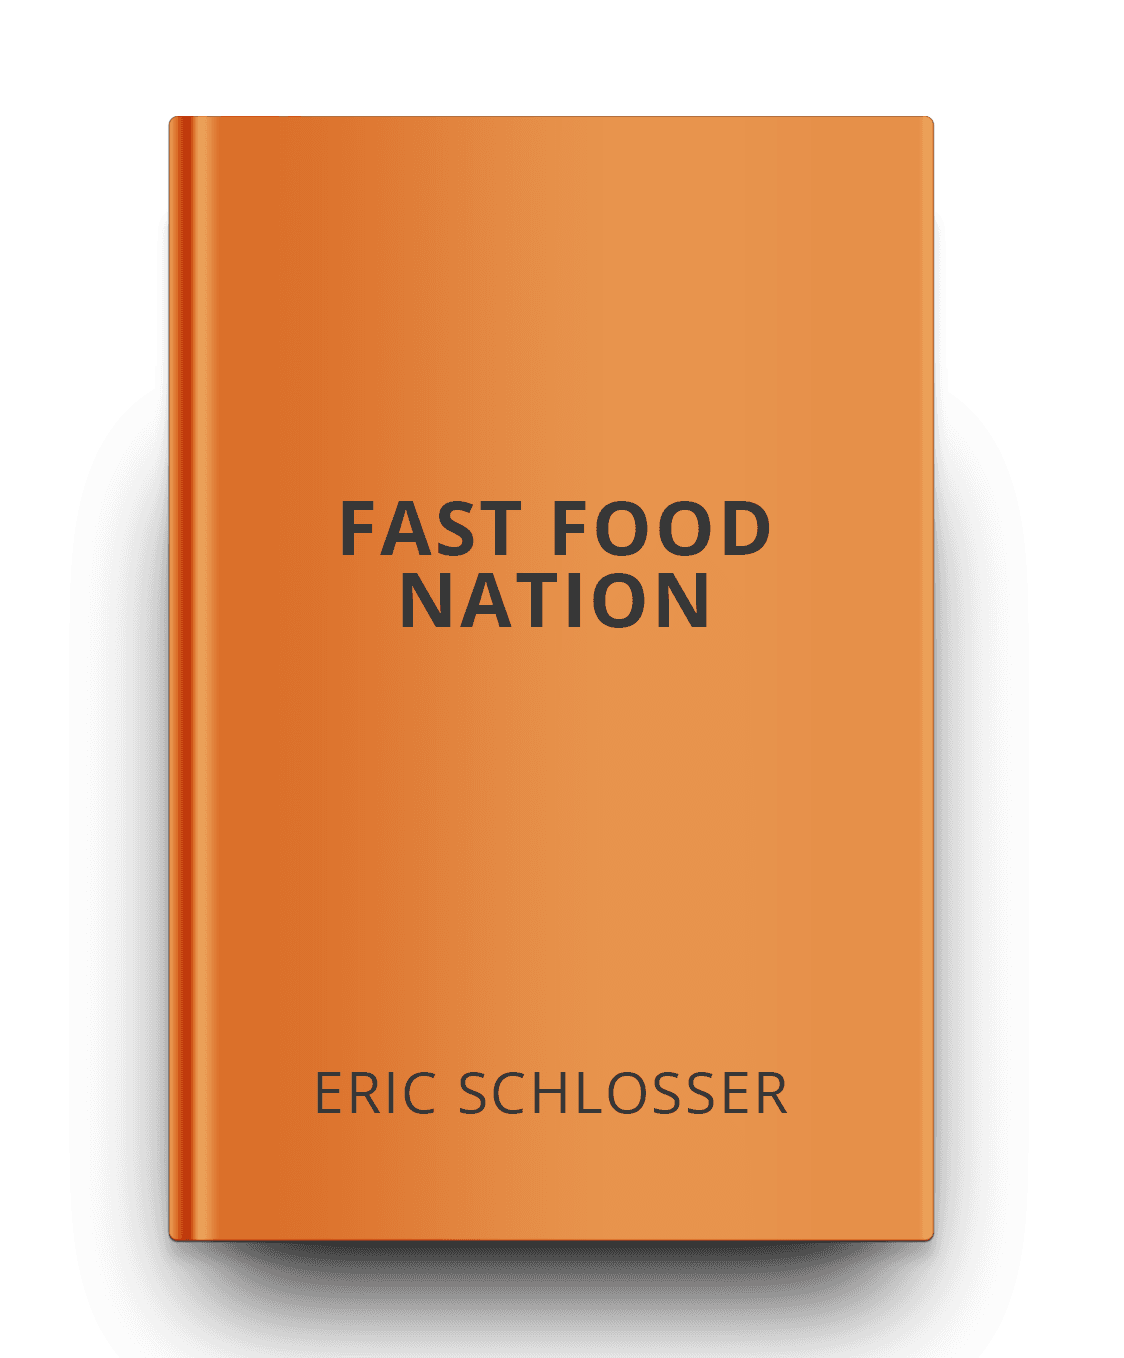 fast food nation 12 essay Free fast food nation papers, essays, and research papers.